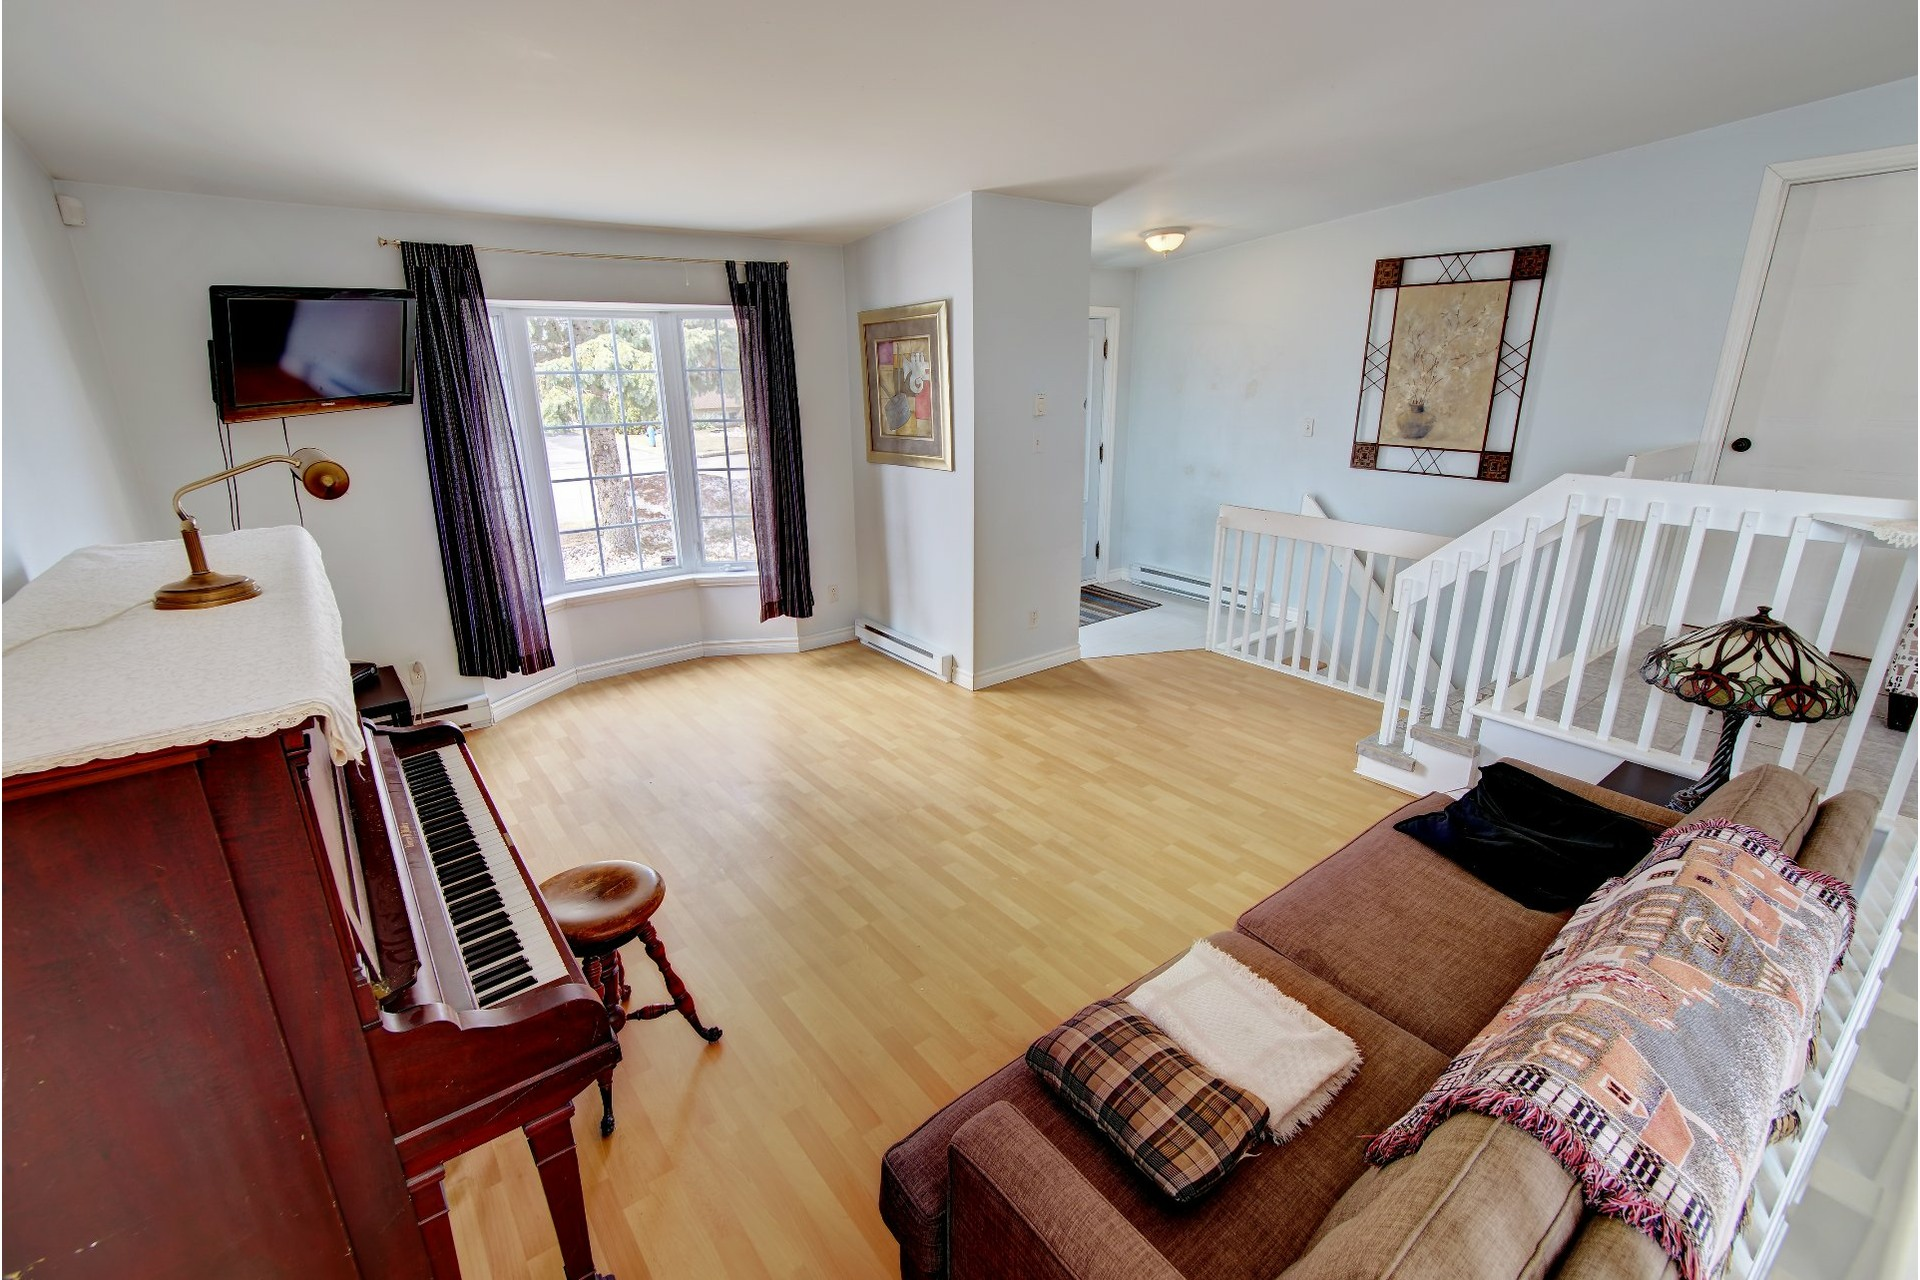 image 6 - House For sale Vaudreuil-Dorion - 11 rooms